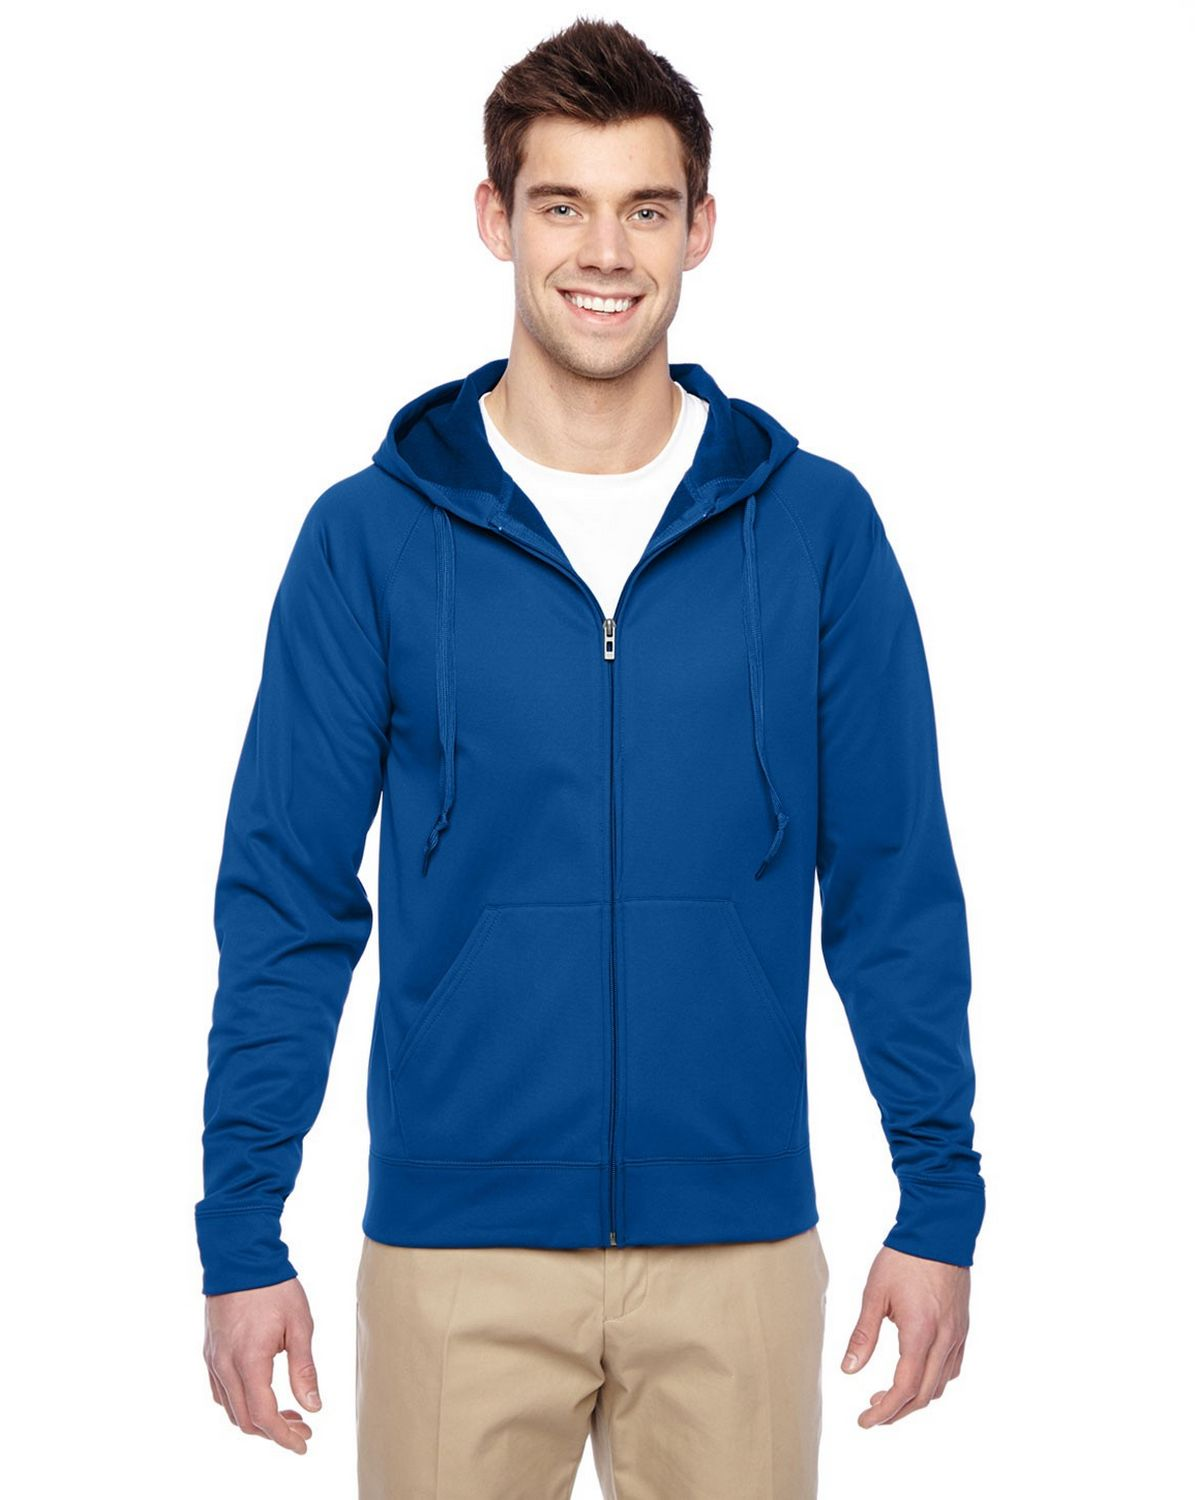 Jerzees PF93MR Fleece Full Zip Hoodie - Royal - L PF93MR